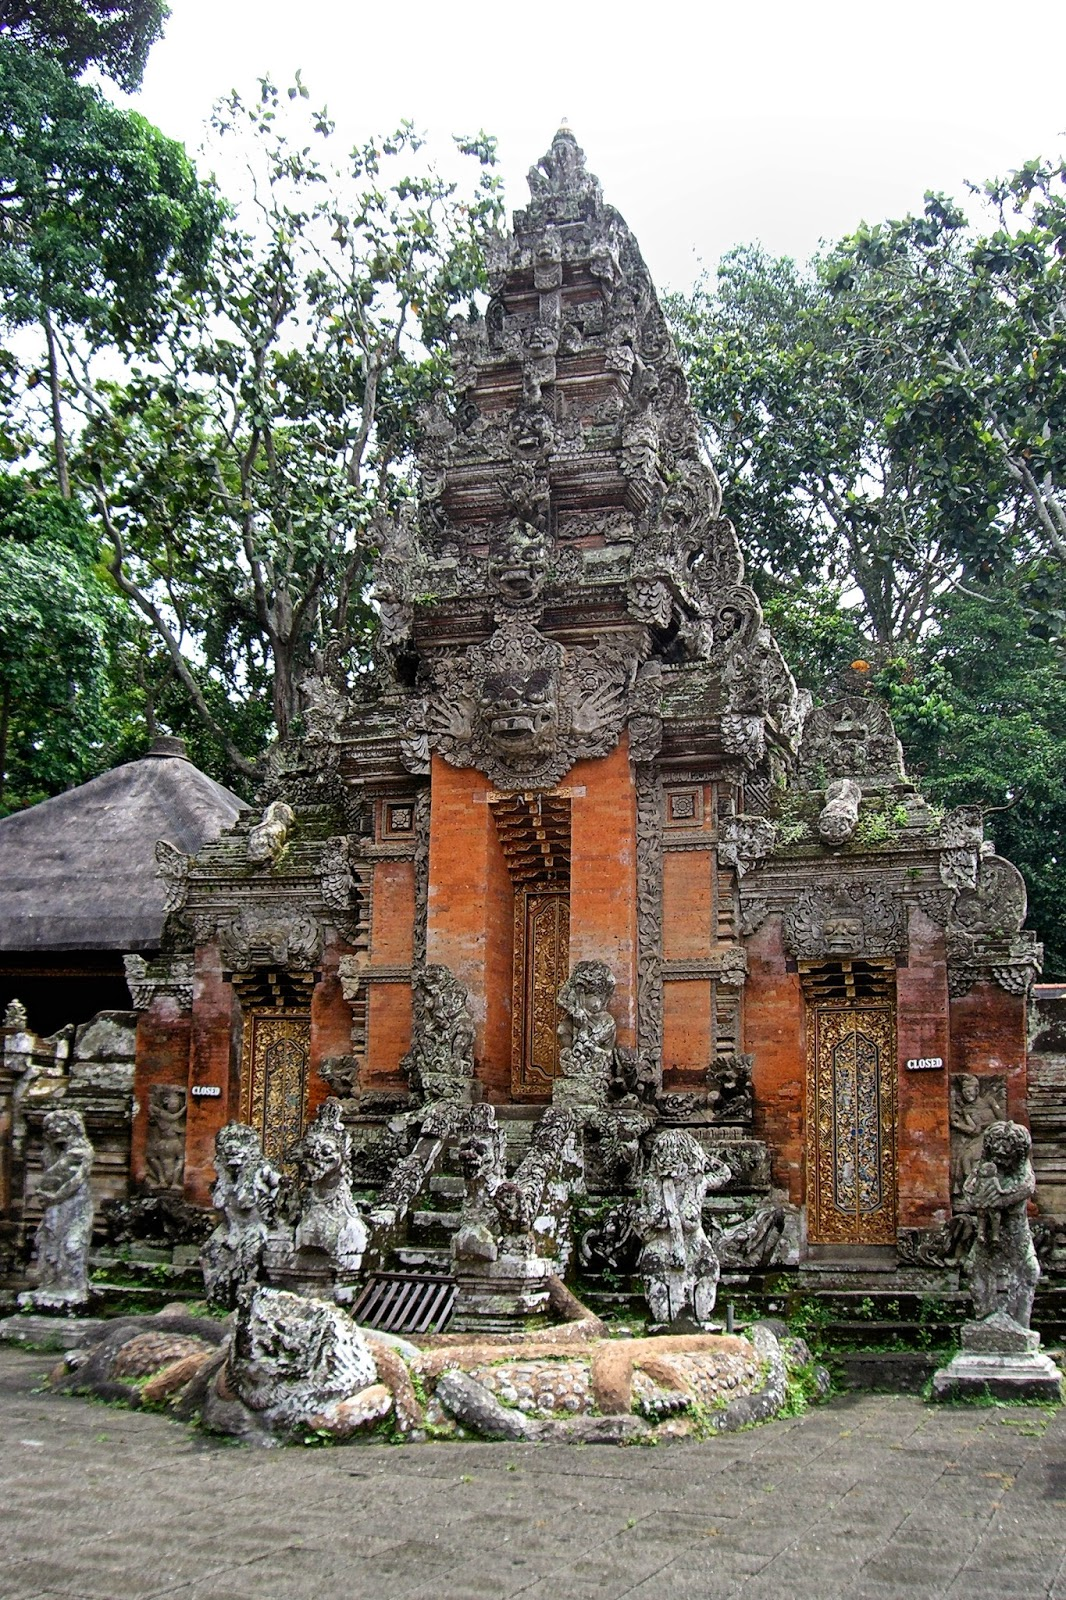 Enchanting Se Asia Bali Indonesia Part Ubud Cultural Gate Pura